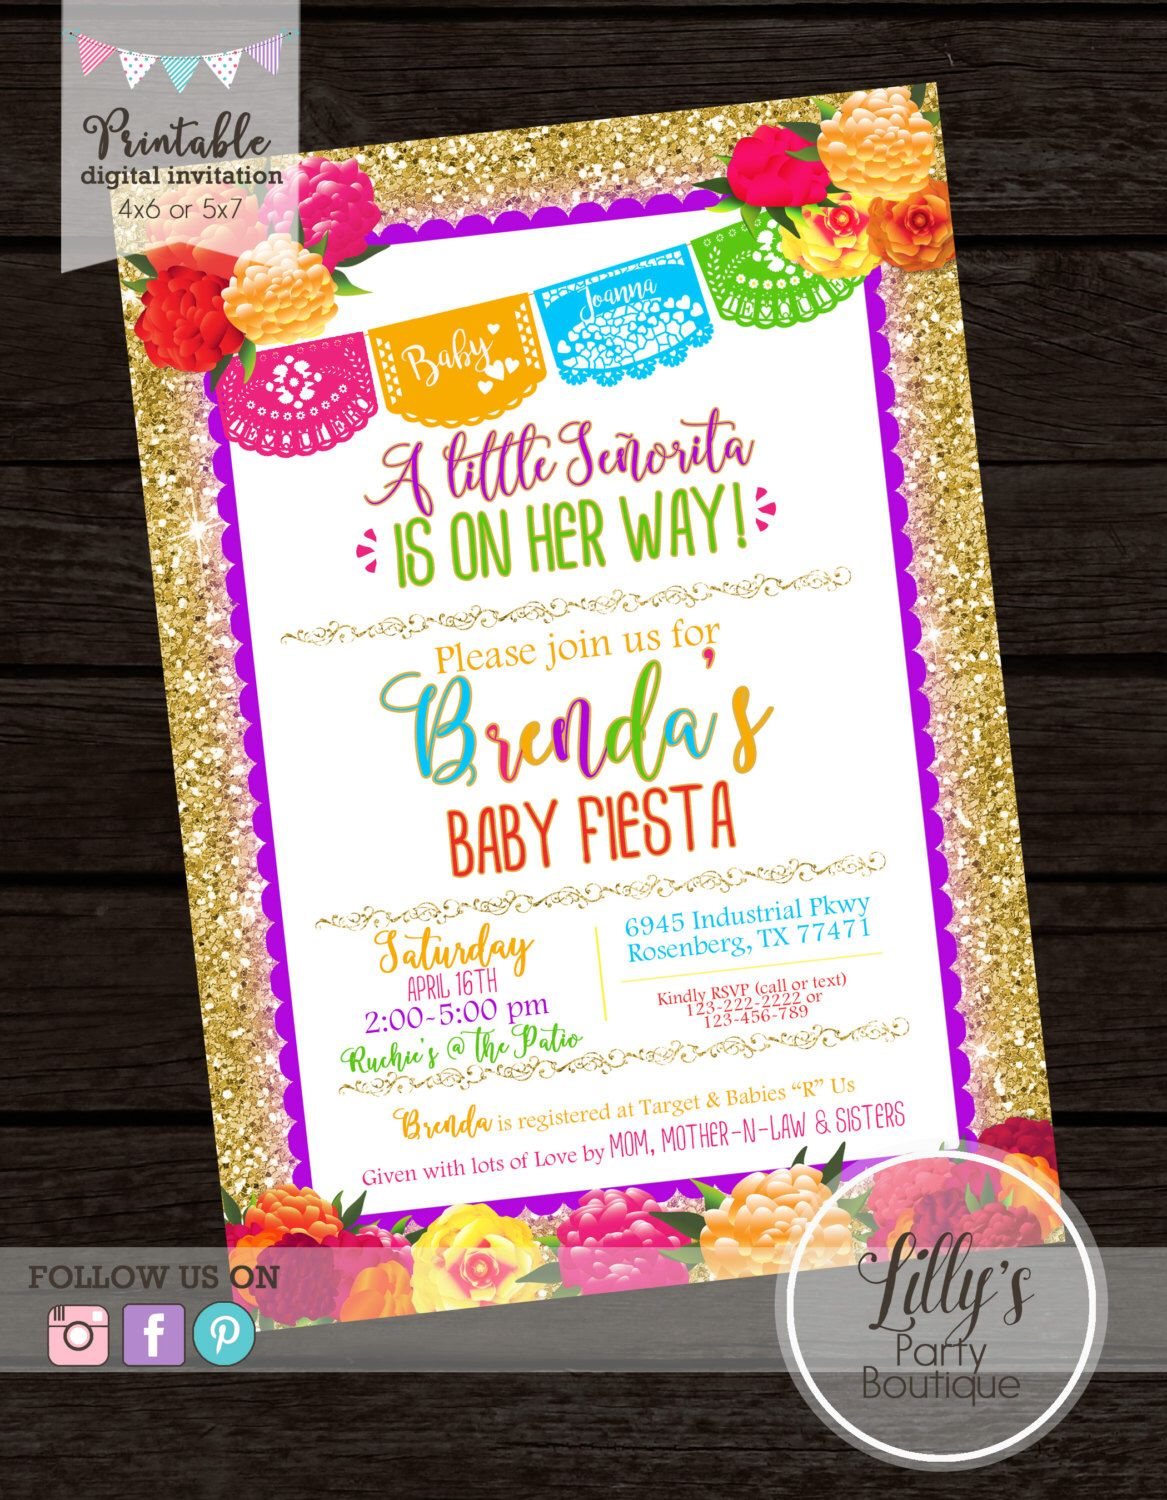 32ded6e0c64a0276c8e611f562efd27c mexican fiesta themed baby shower invitation by designedbybrenda,Mexican Themed Baby Shower Invitations